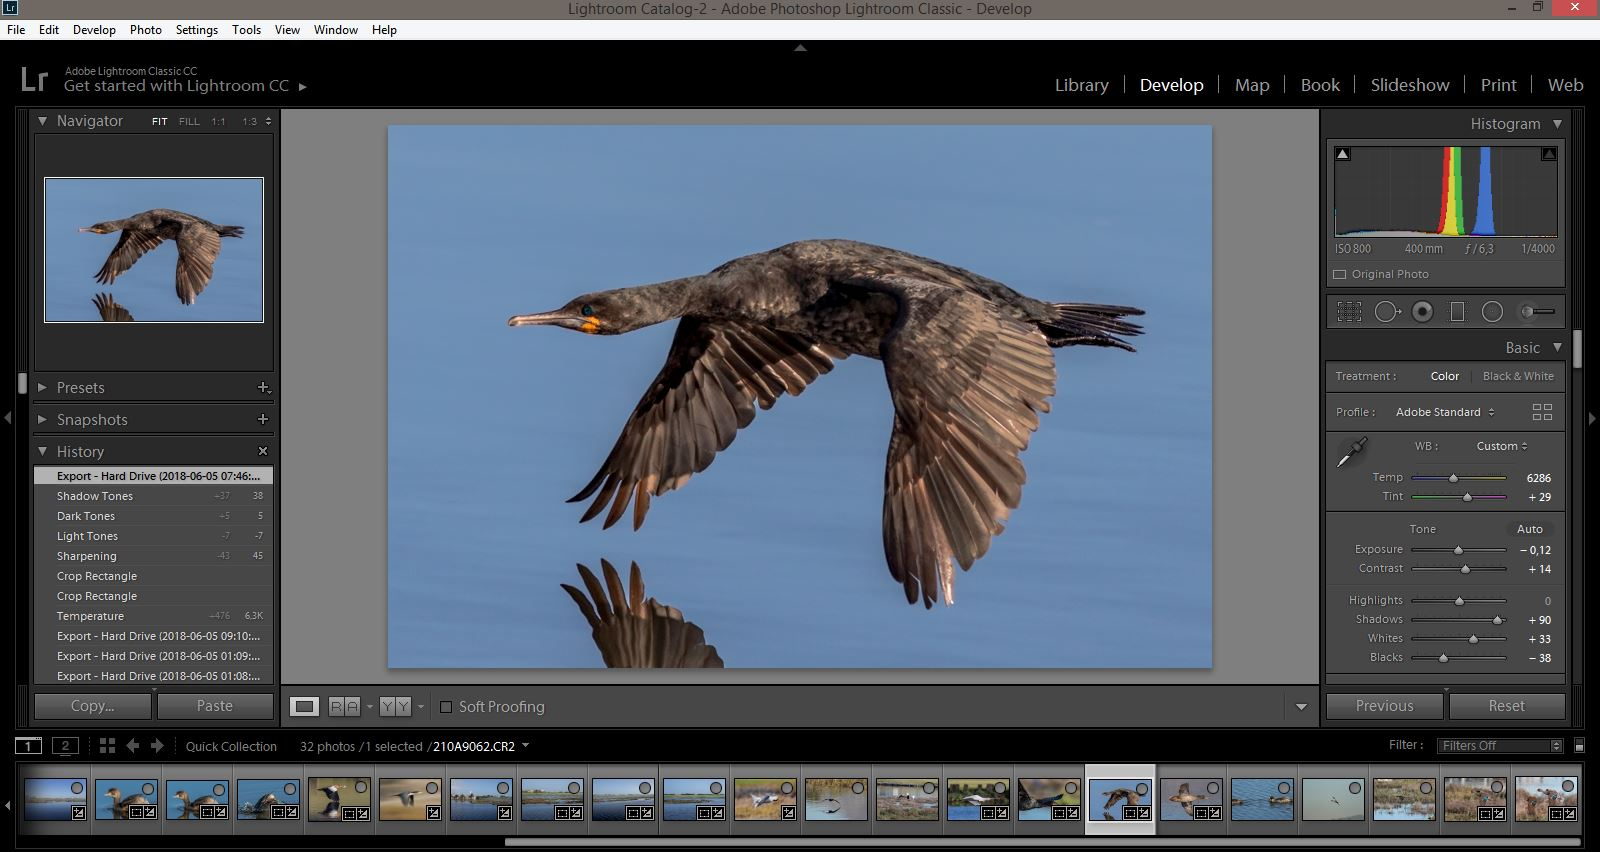 Vernon Chalmers Photography: Upgrading from Photoshop